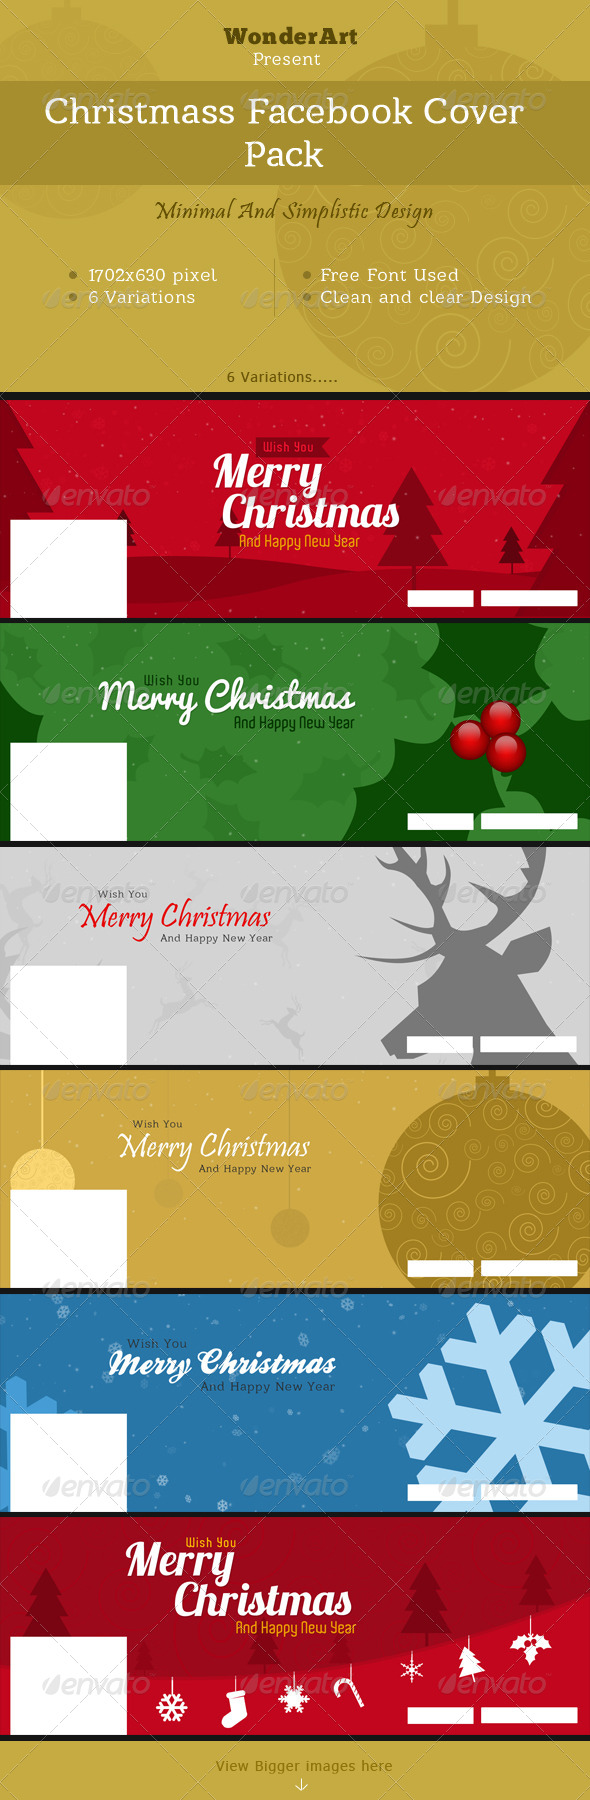 Christmas Minimal Faebook Cover Pack - Facebook Timeline Covers Social Media